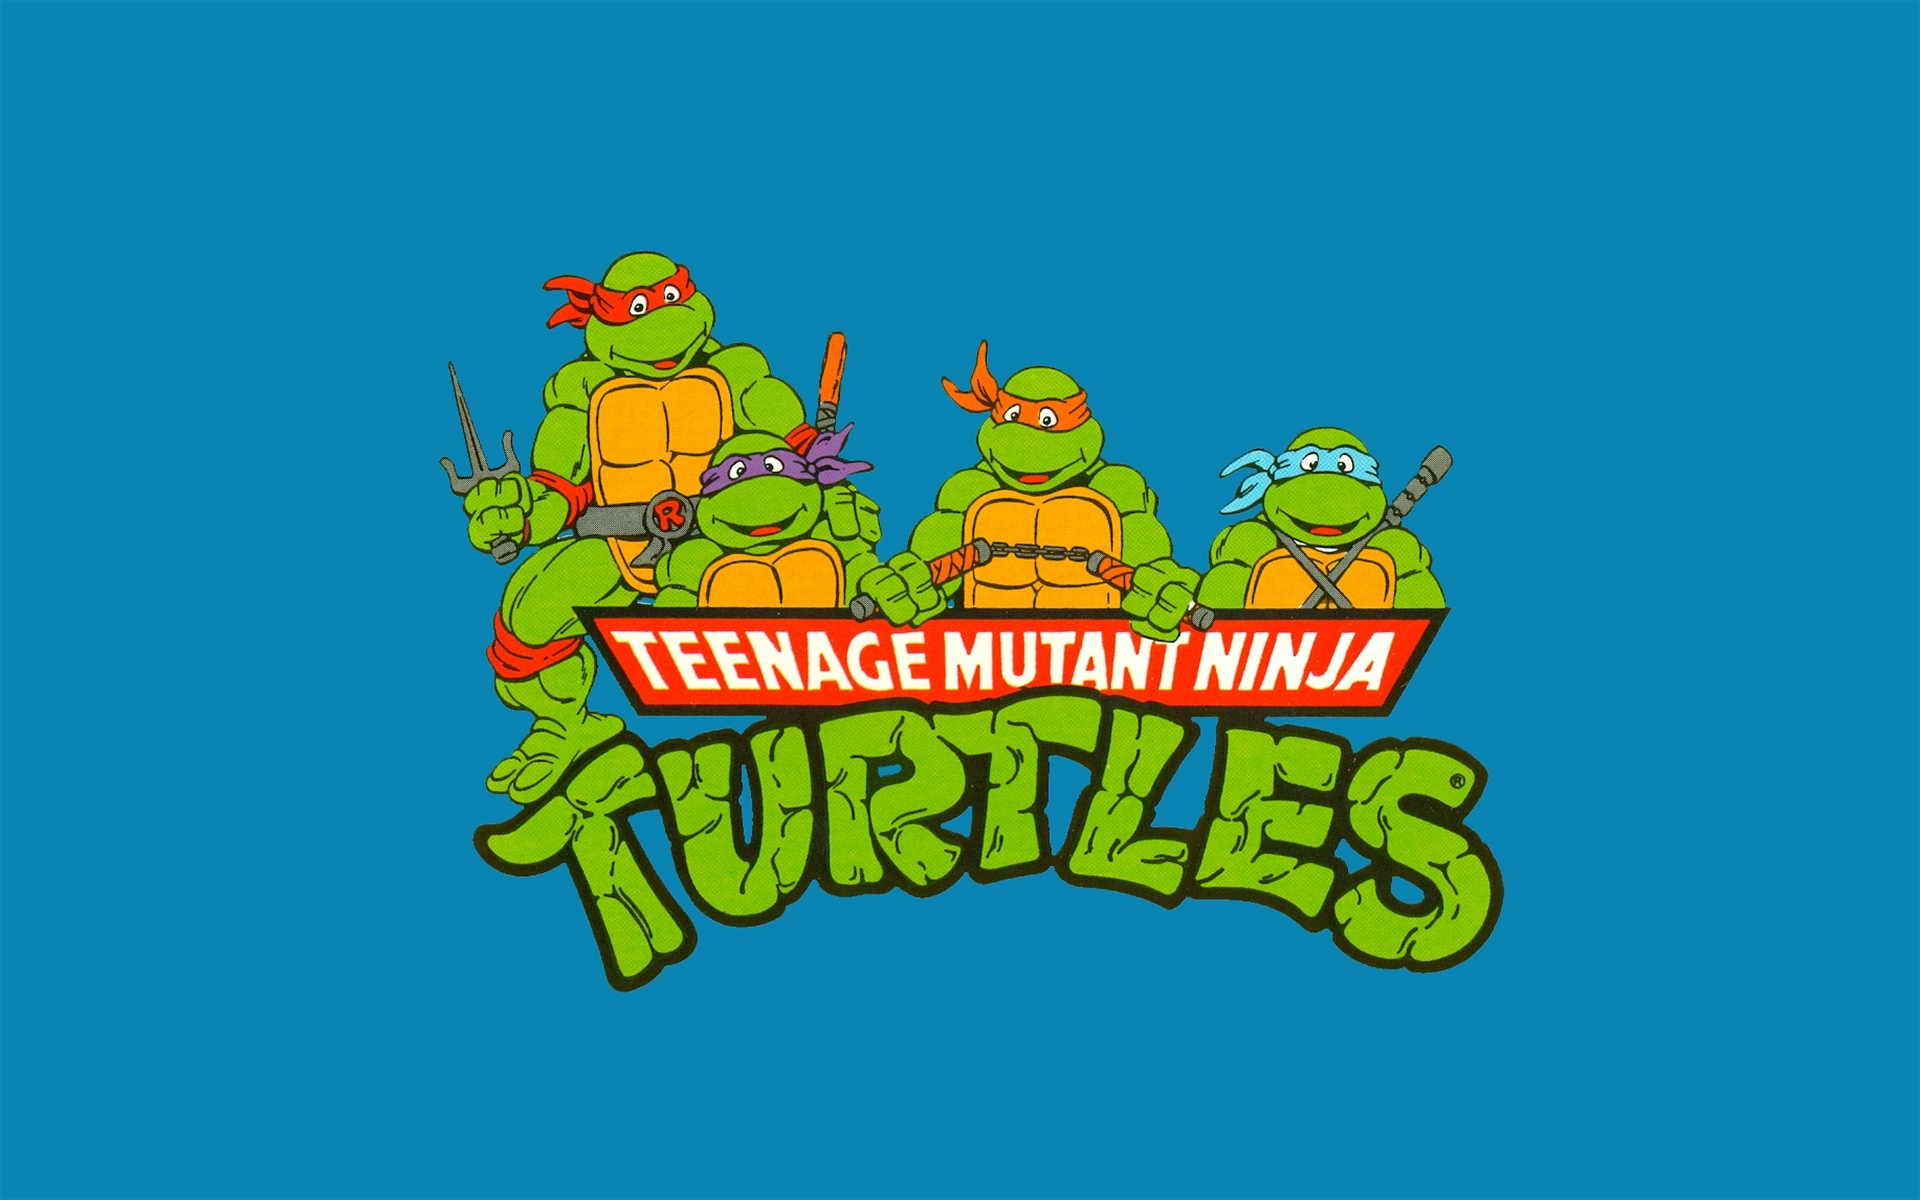 teenage mutant ninja turtles (tmnt) wallpaper for ipad mini 3